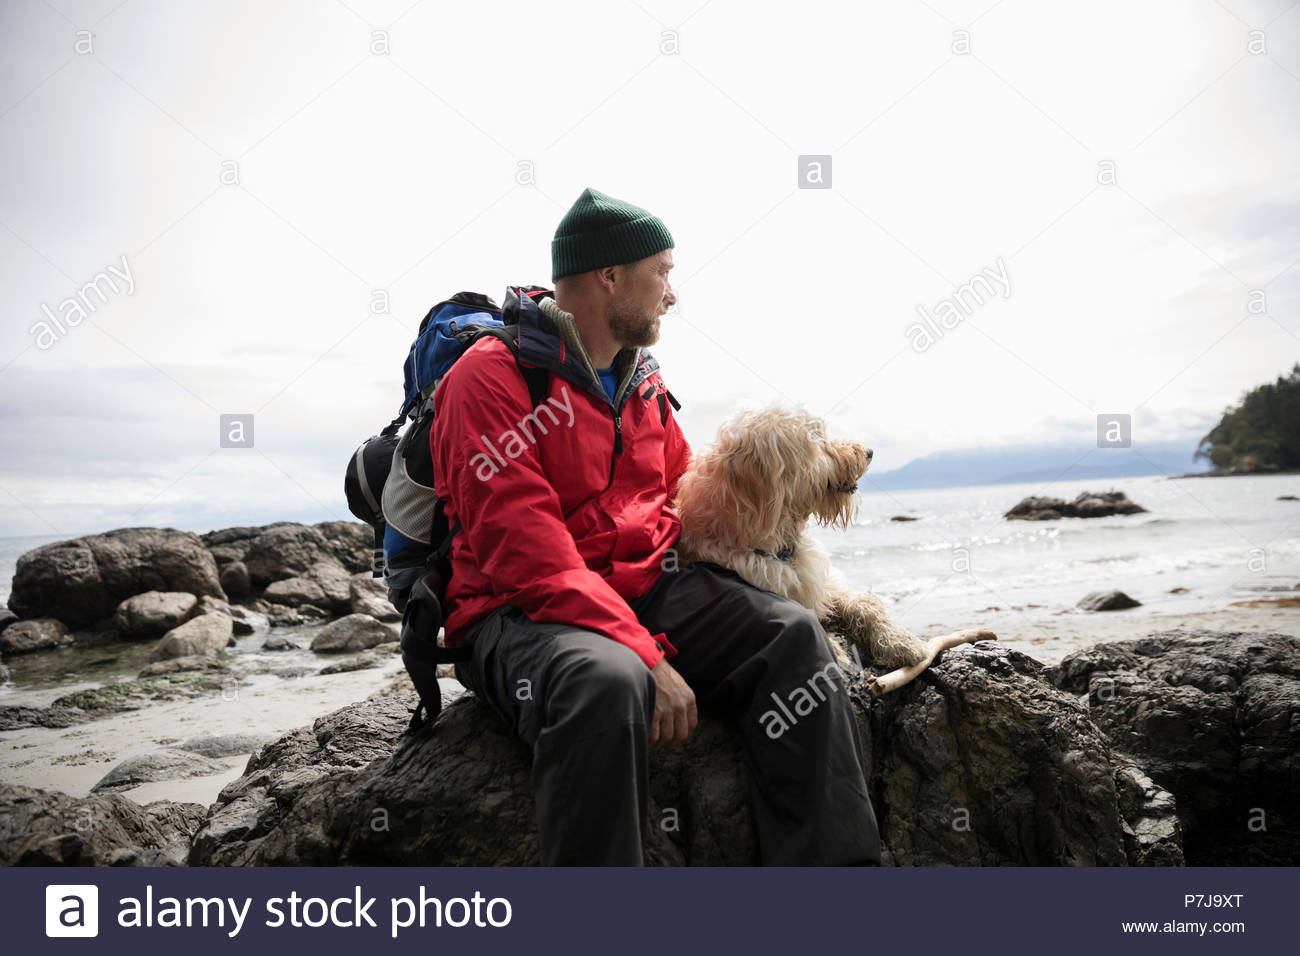 Man with dog sitting on rocks on rugged beach - Stock Image